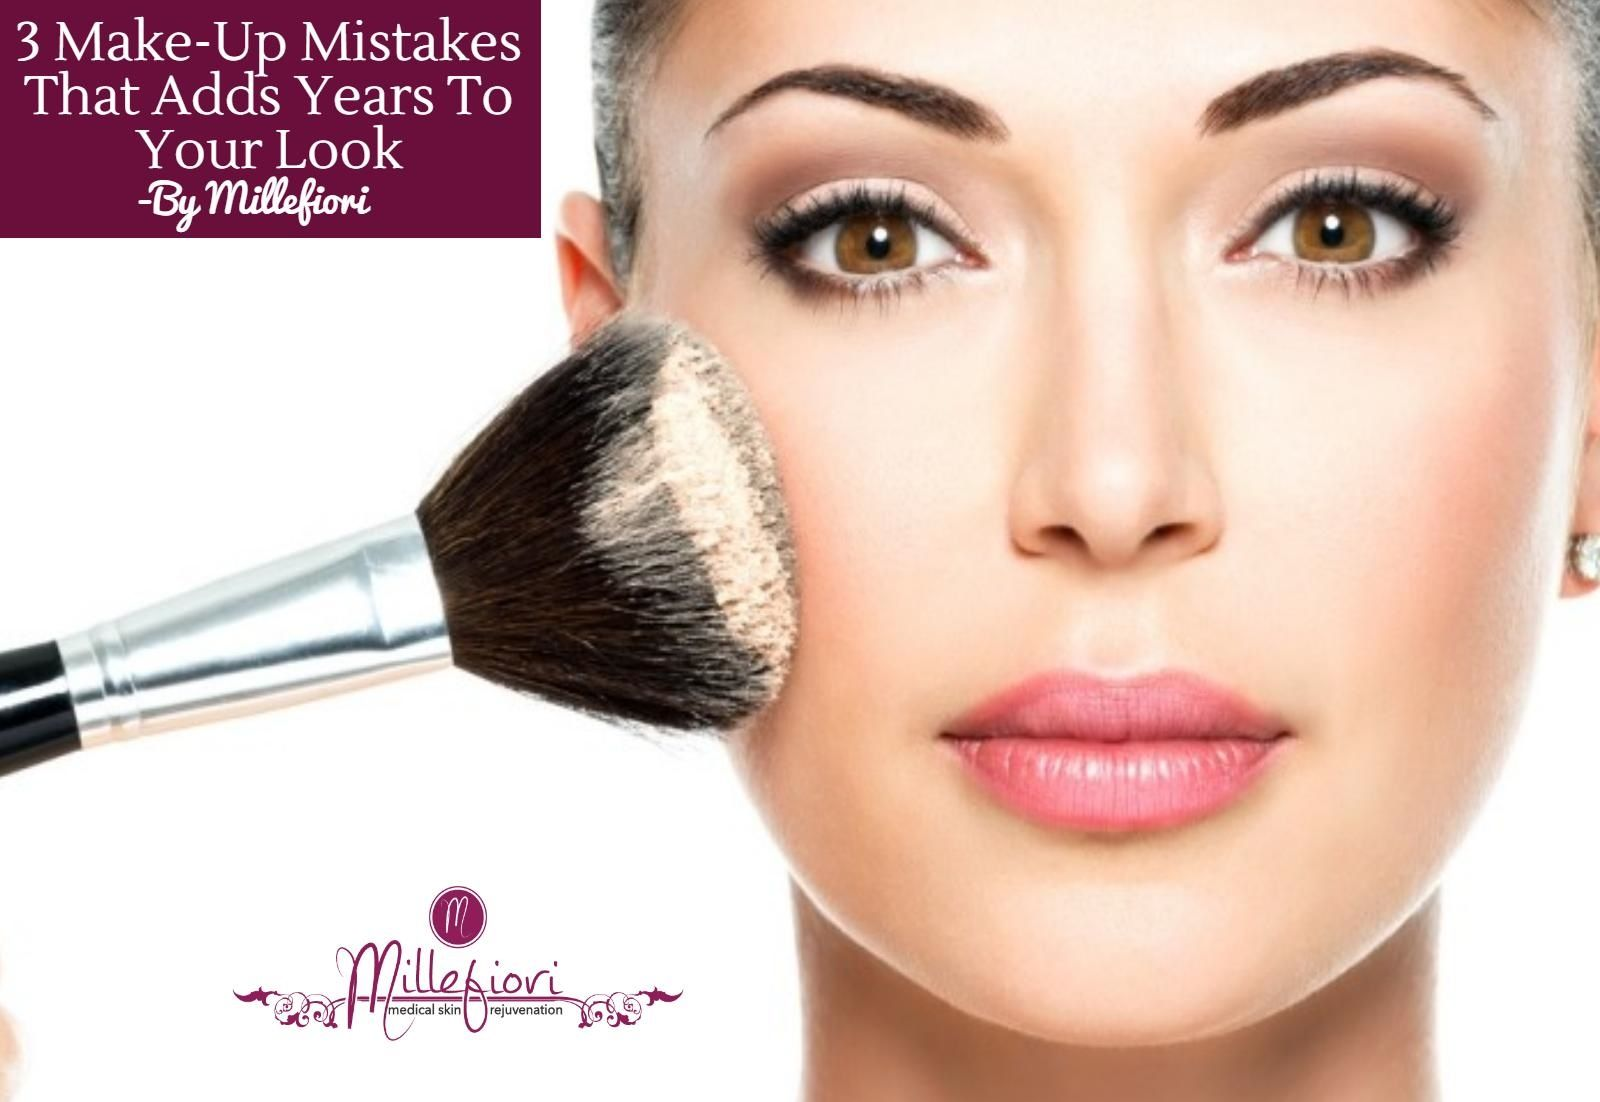 3 Makeup Mistakes That are Adding Years to Your Face